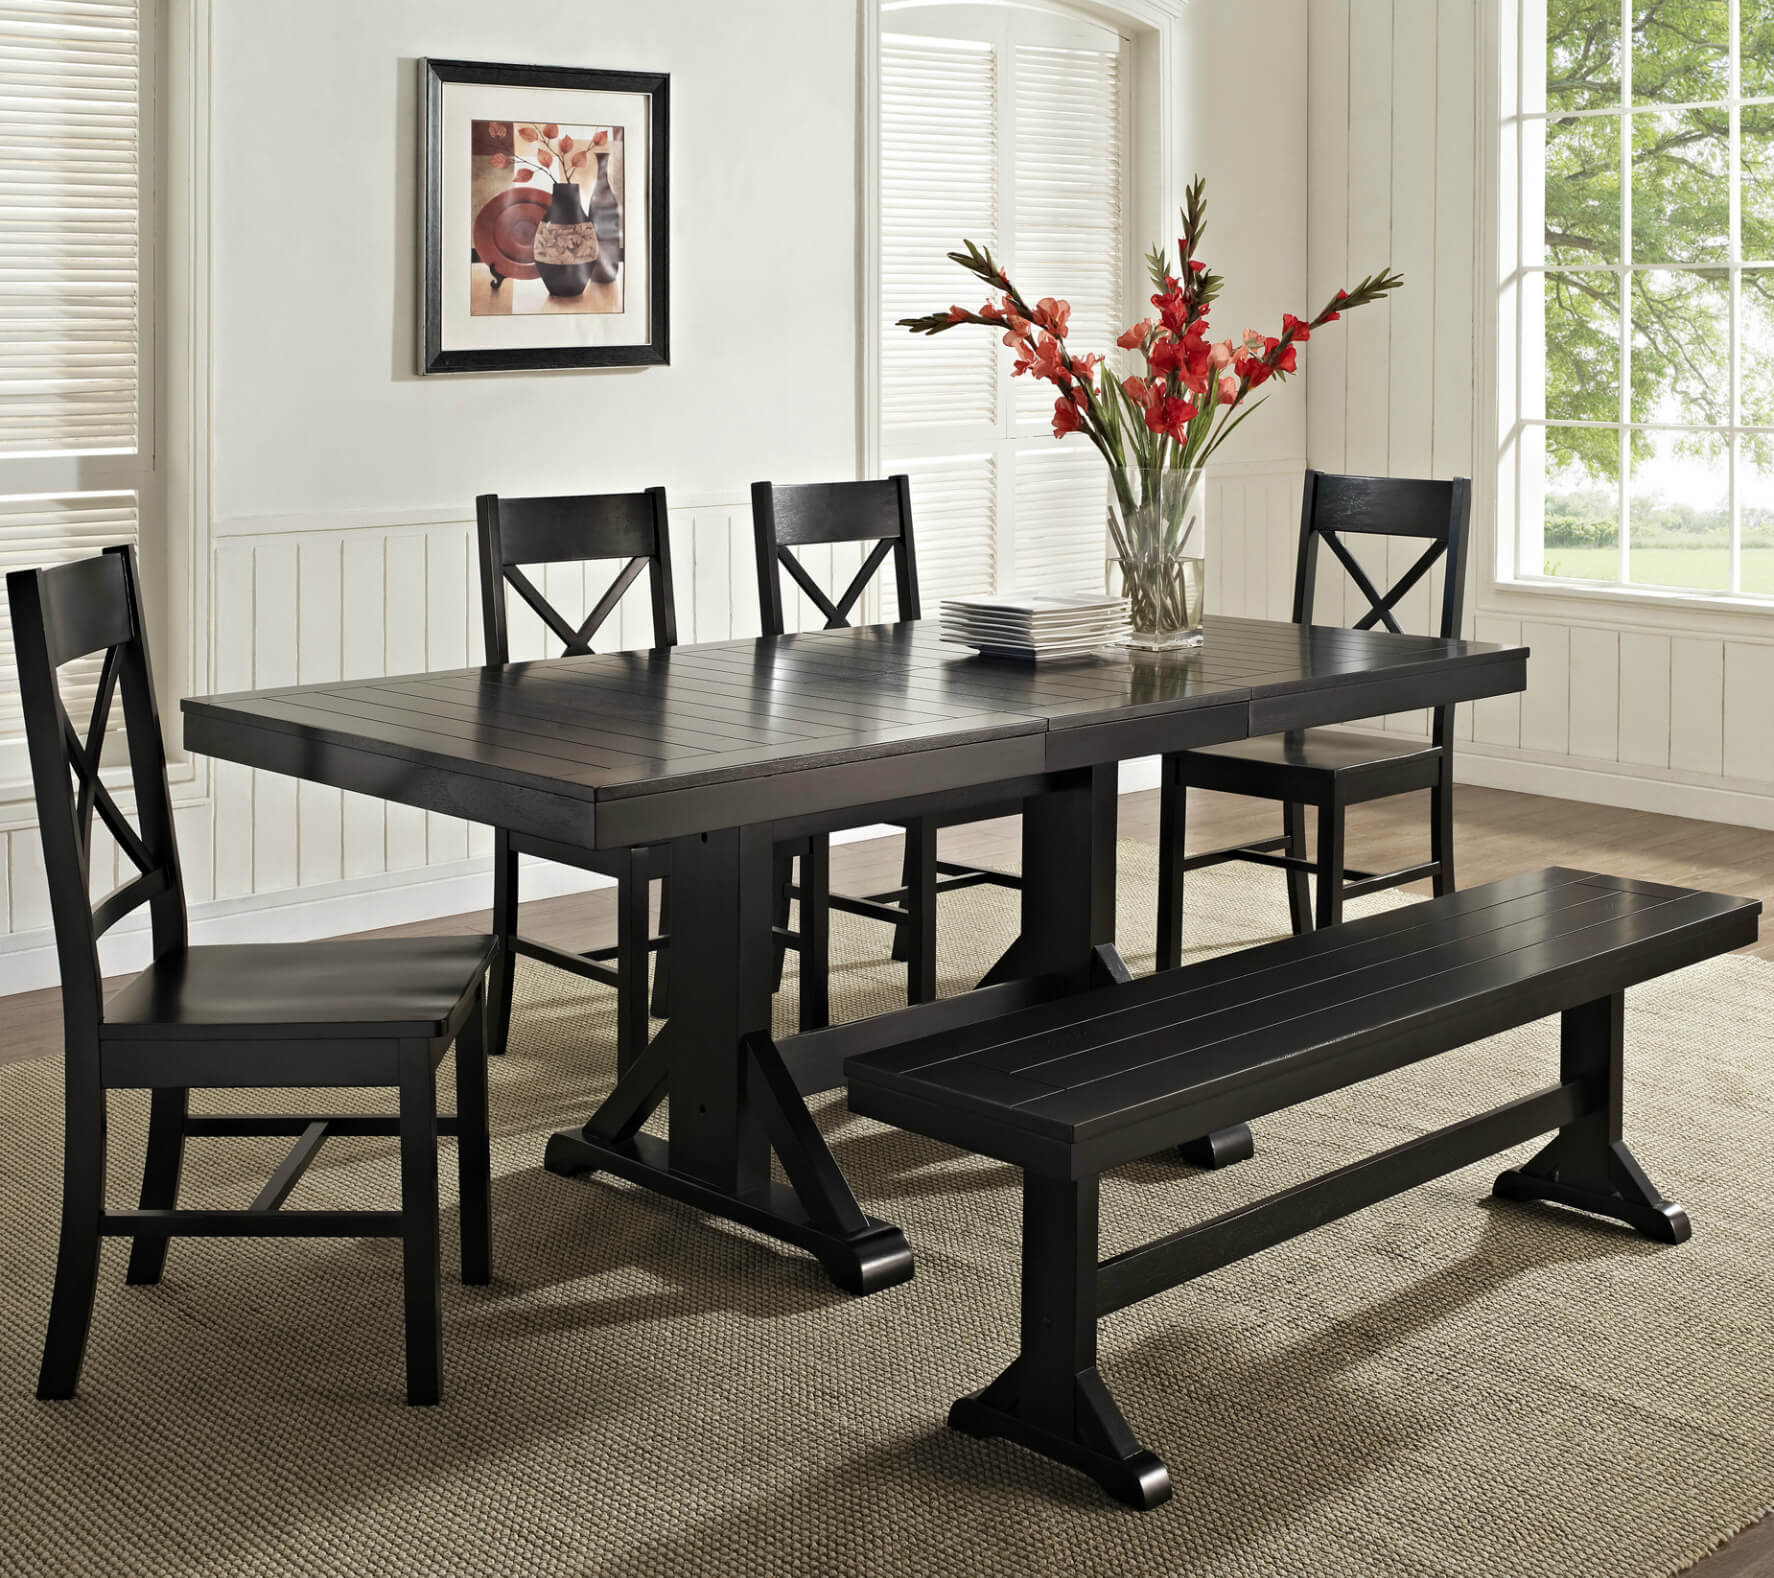 Here s a great cottage style dining set with bench  While it s a dark  finish. 26 Big   Small Dining Room Sets with Bench Seating